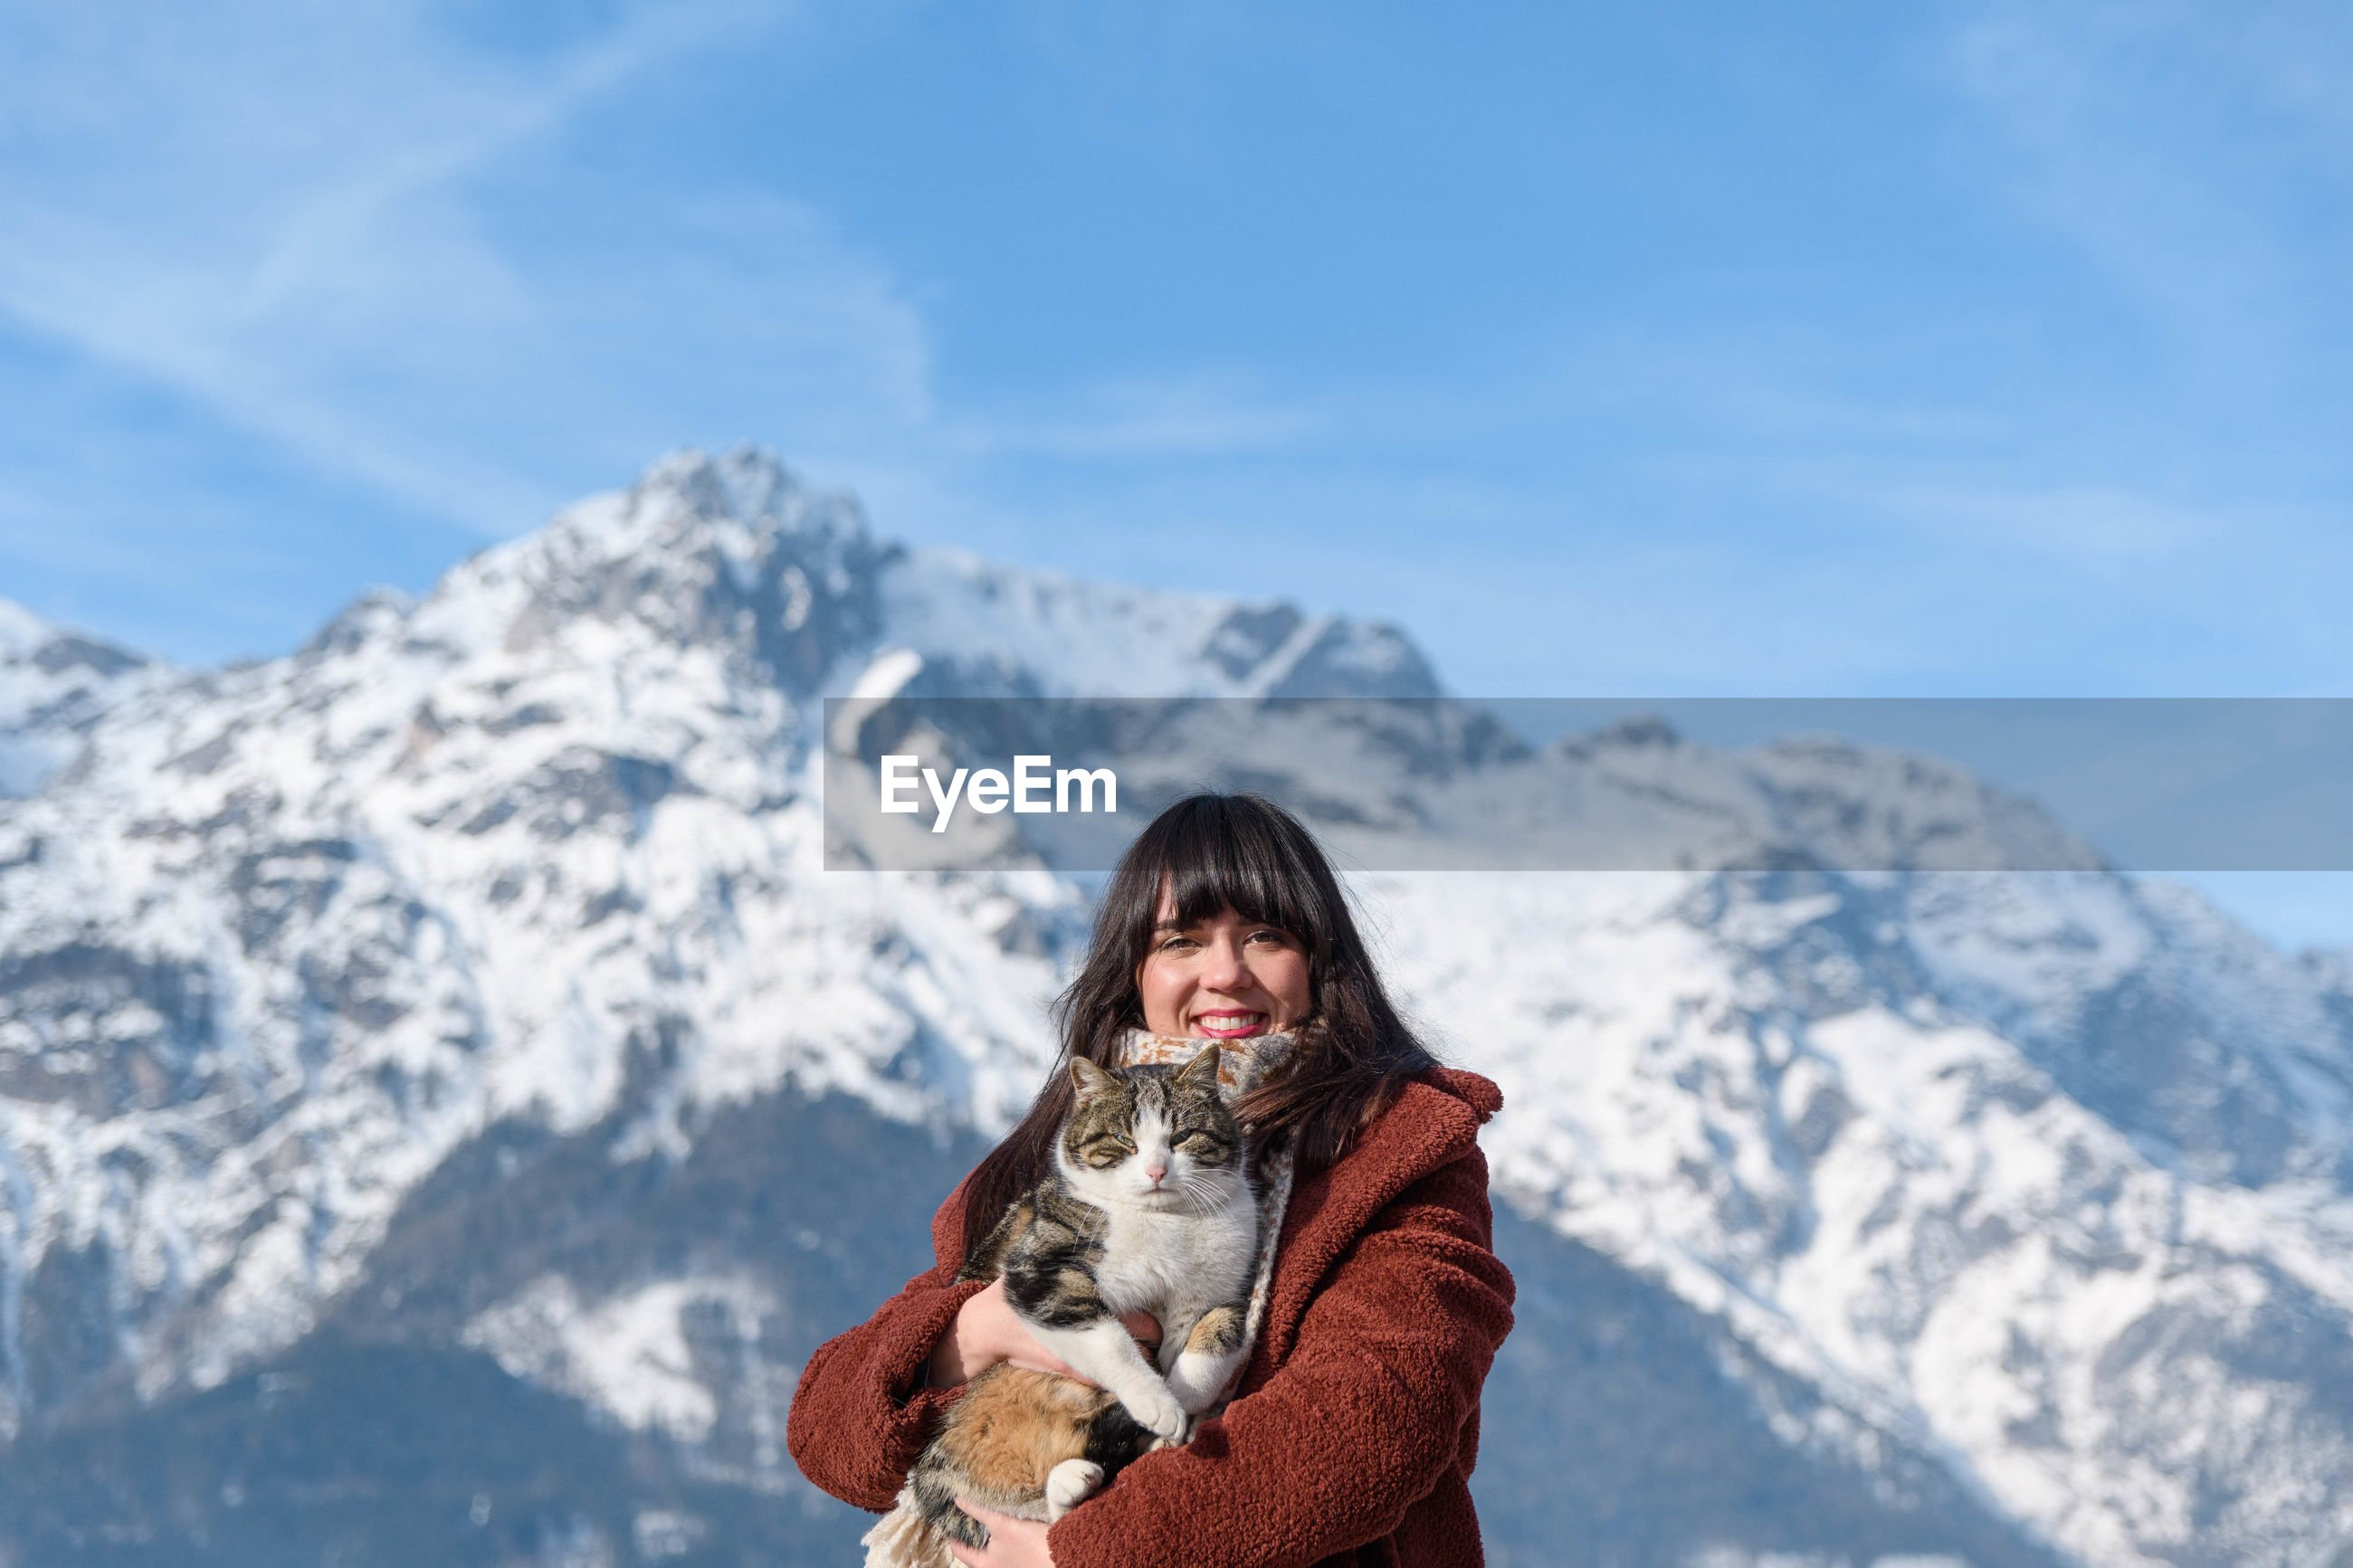 Portrait of a young woman holding a cat. mountains, winter, depth of field.